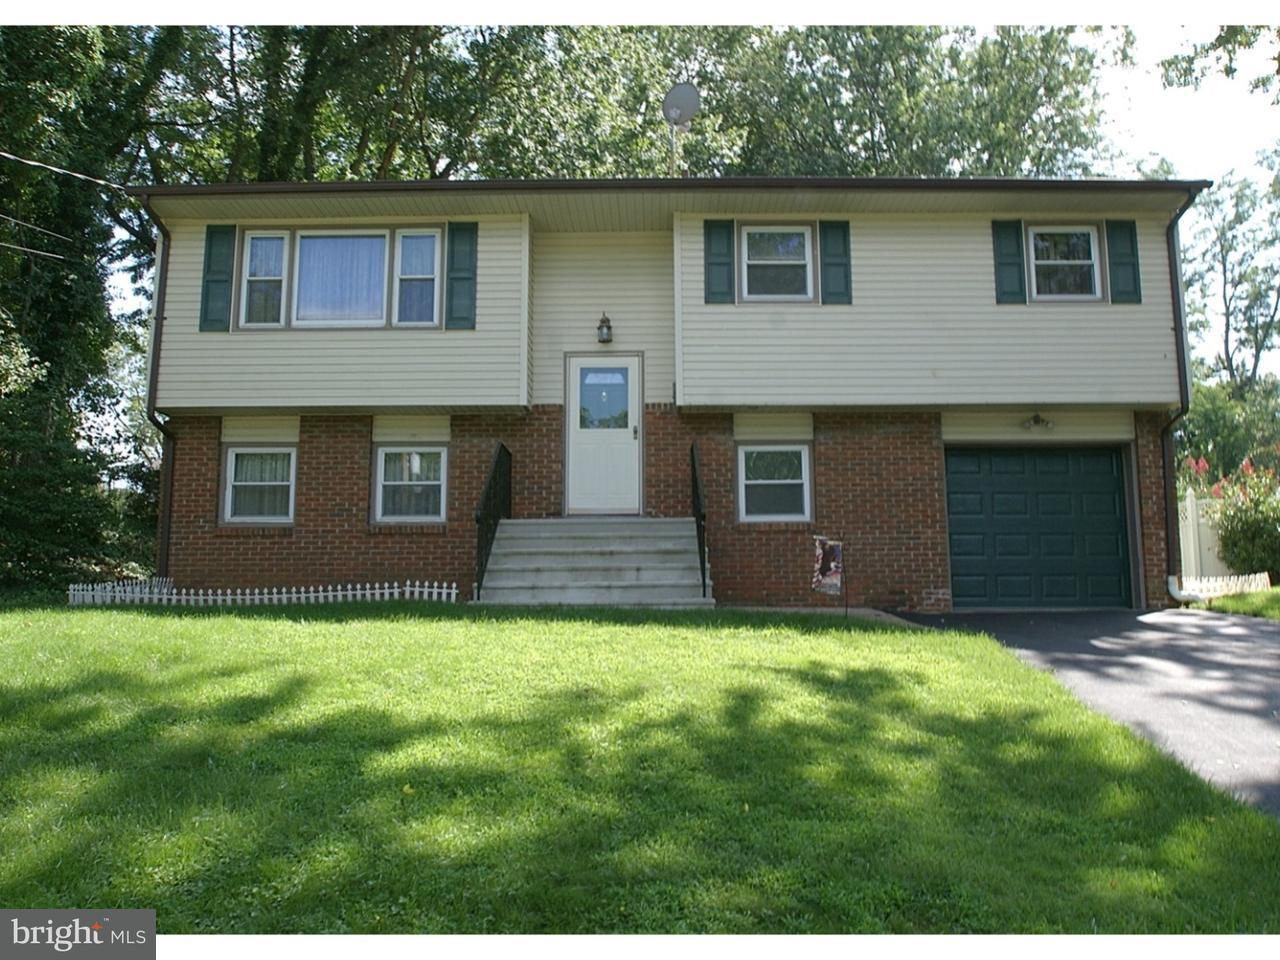 Single Family Home for Sale at 11 HAGEMOUNT Avenue Hightstown, New Jersey 08520 United StatesMunicipality: Hightstown Borough